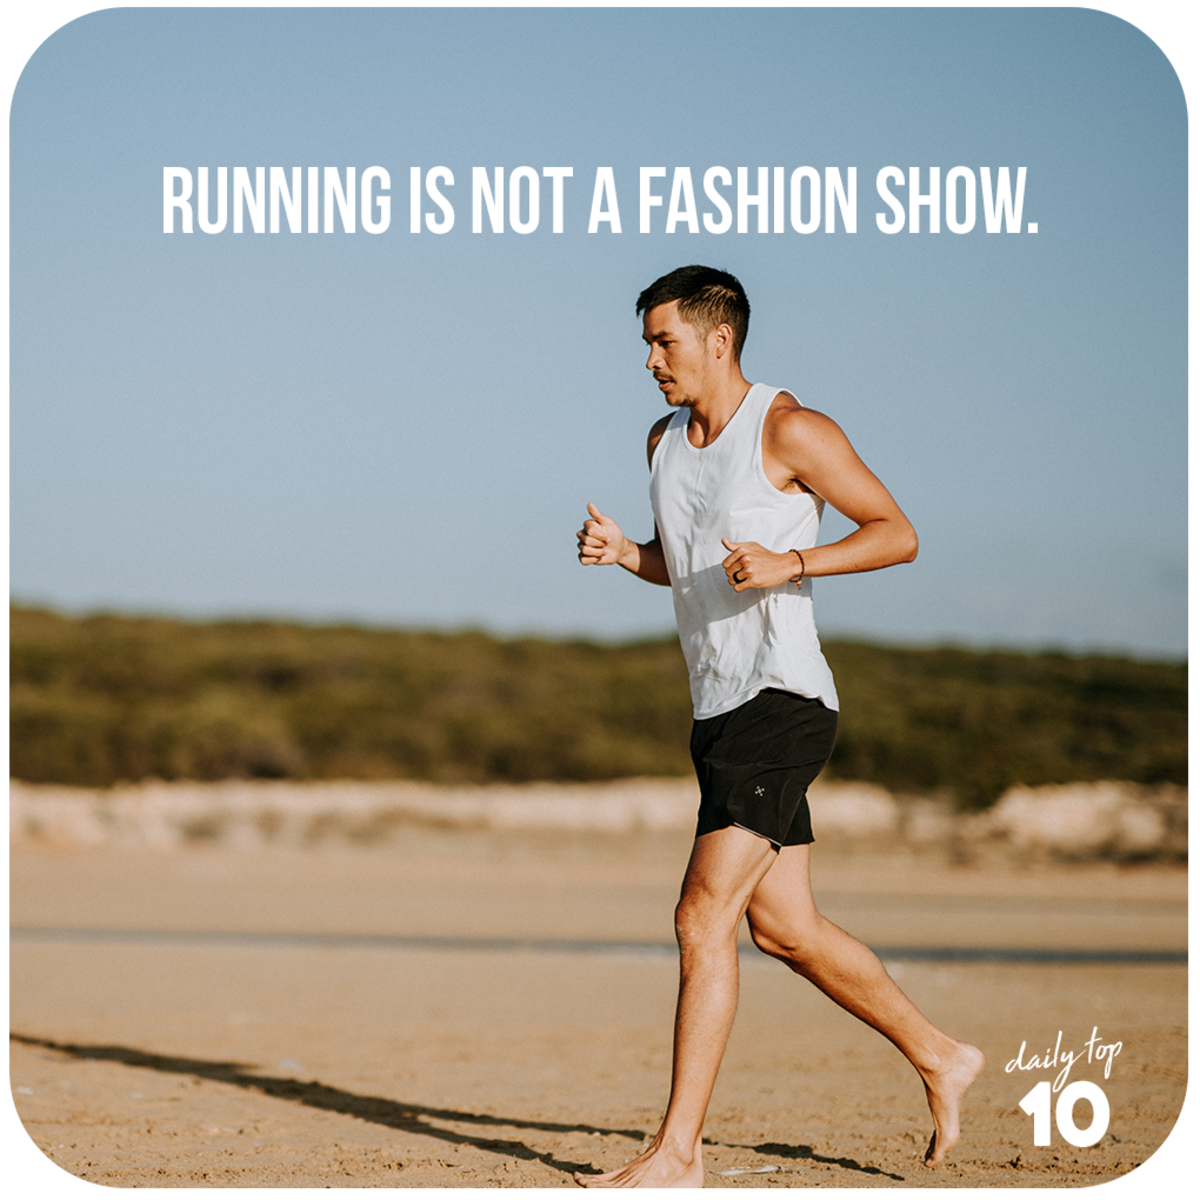 Running is not a fashion show.